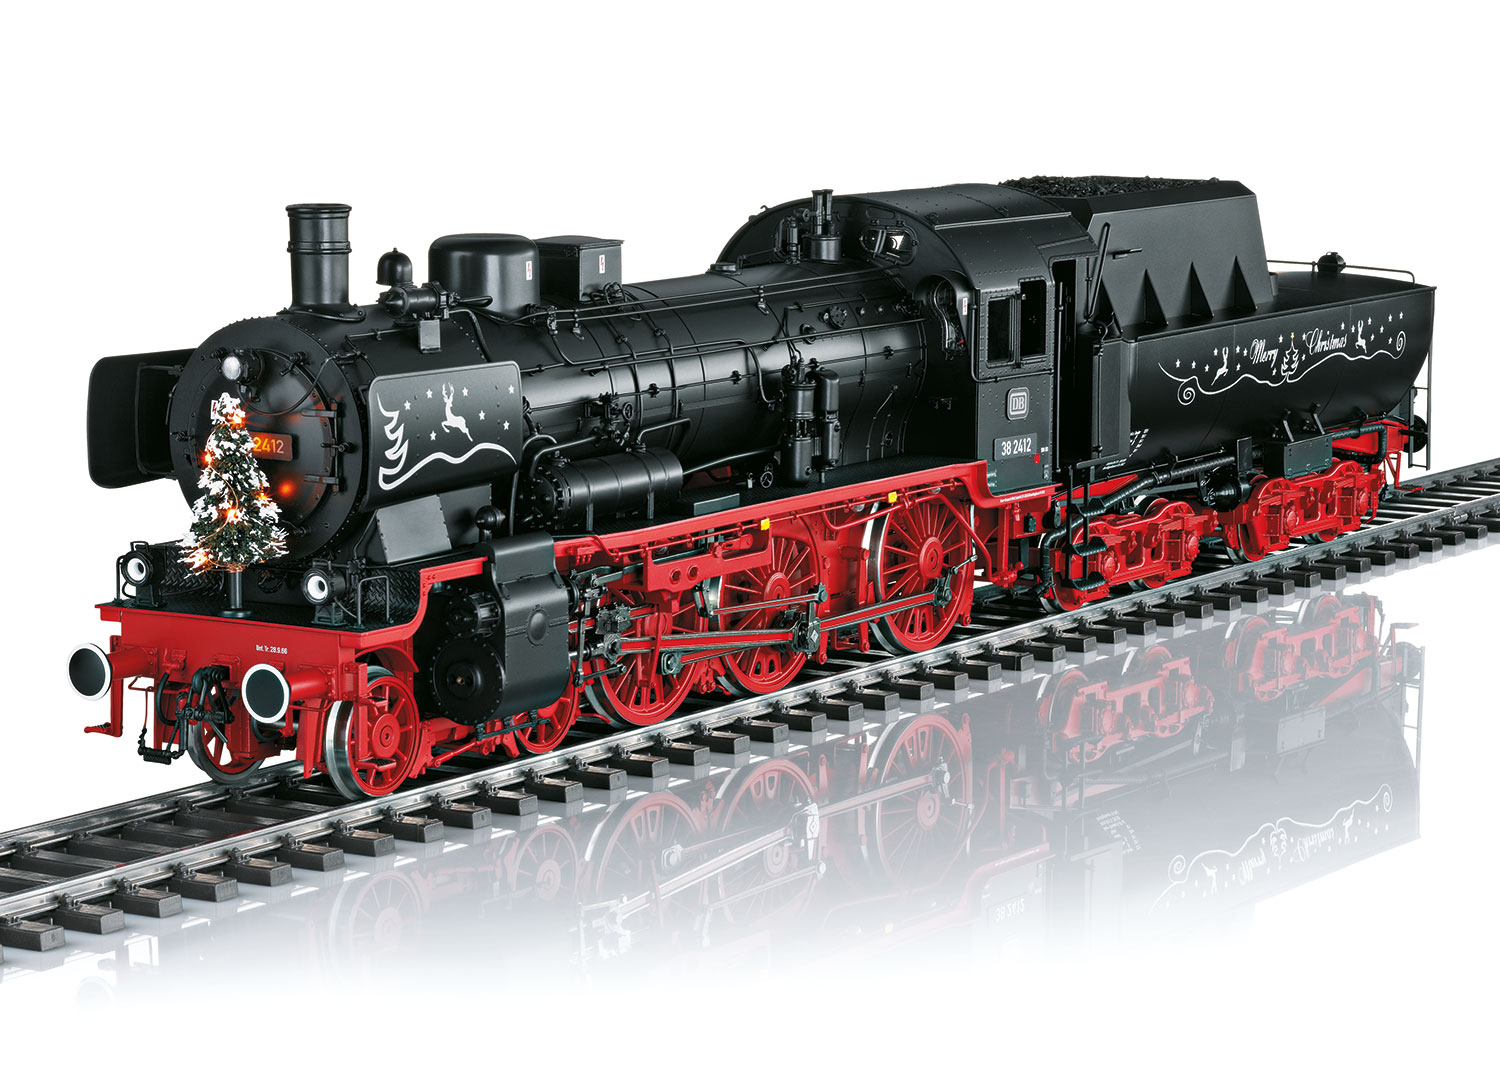 Christmas Steam Locomotive with a Tub-Style Tender.